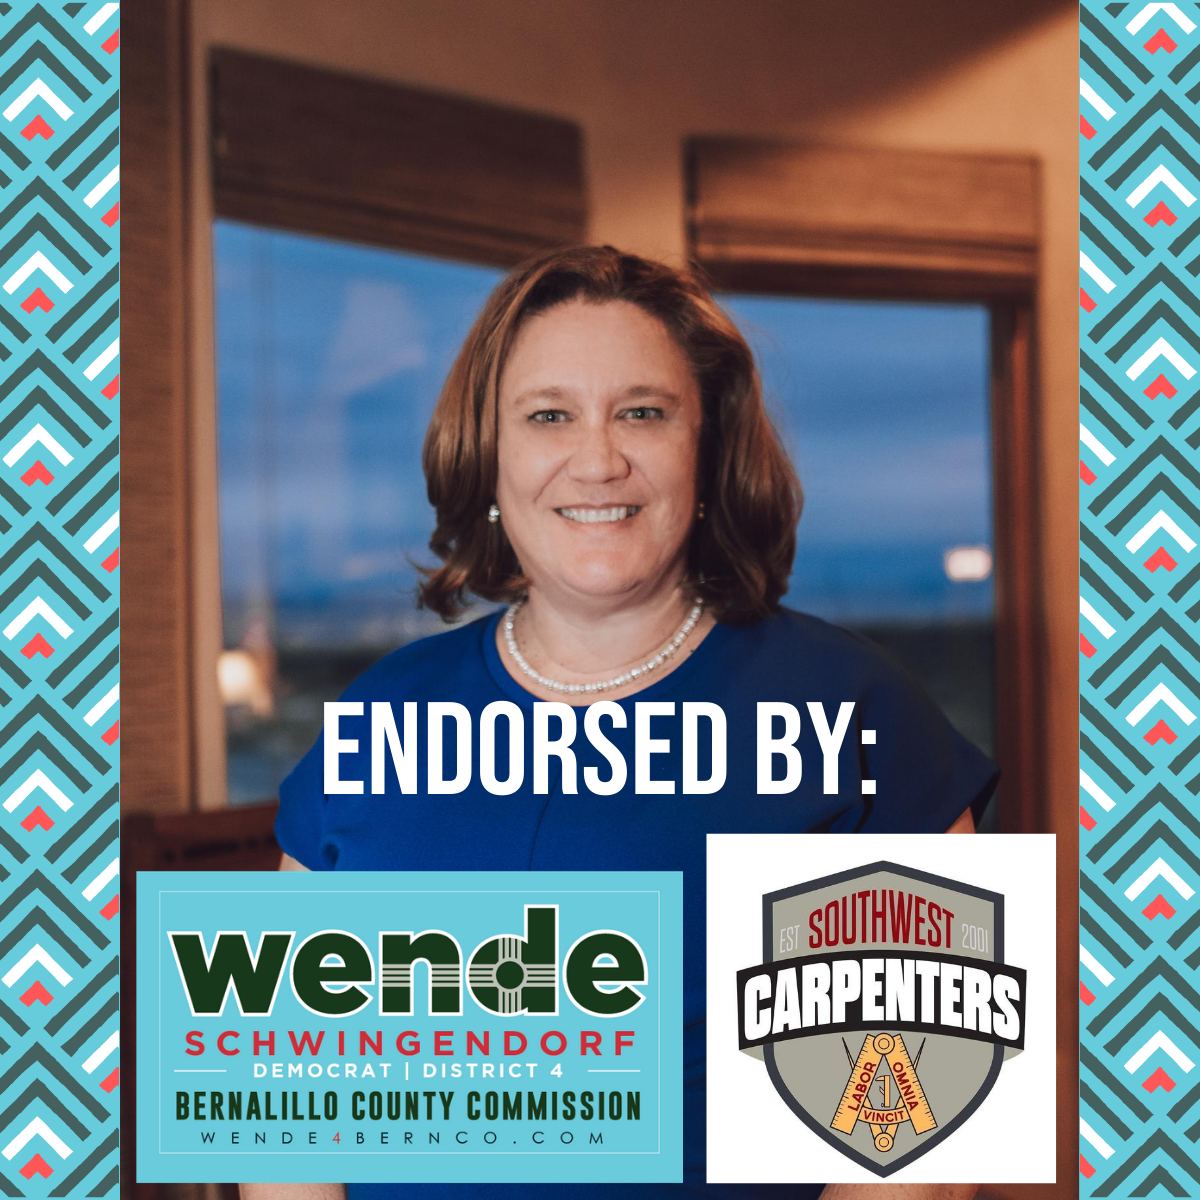 Carpenters Union Endorsement